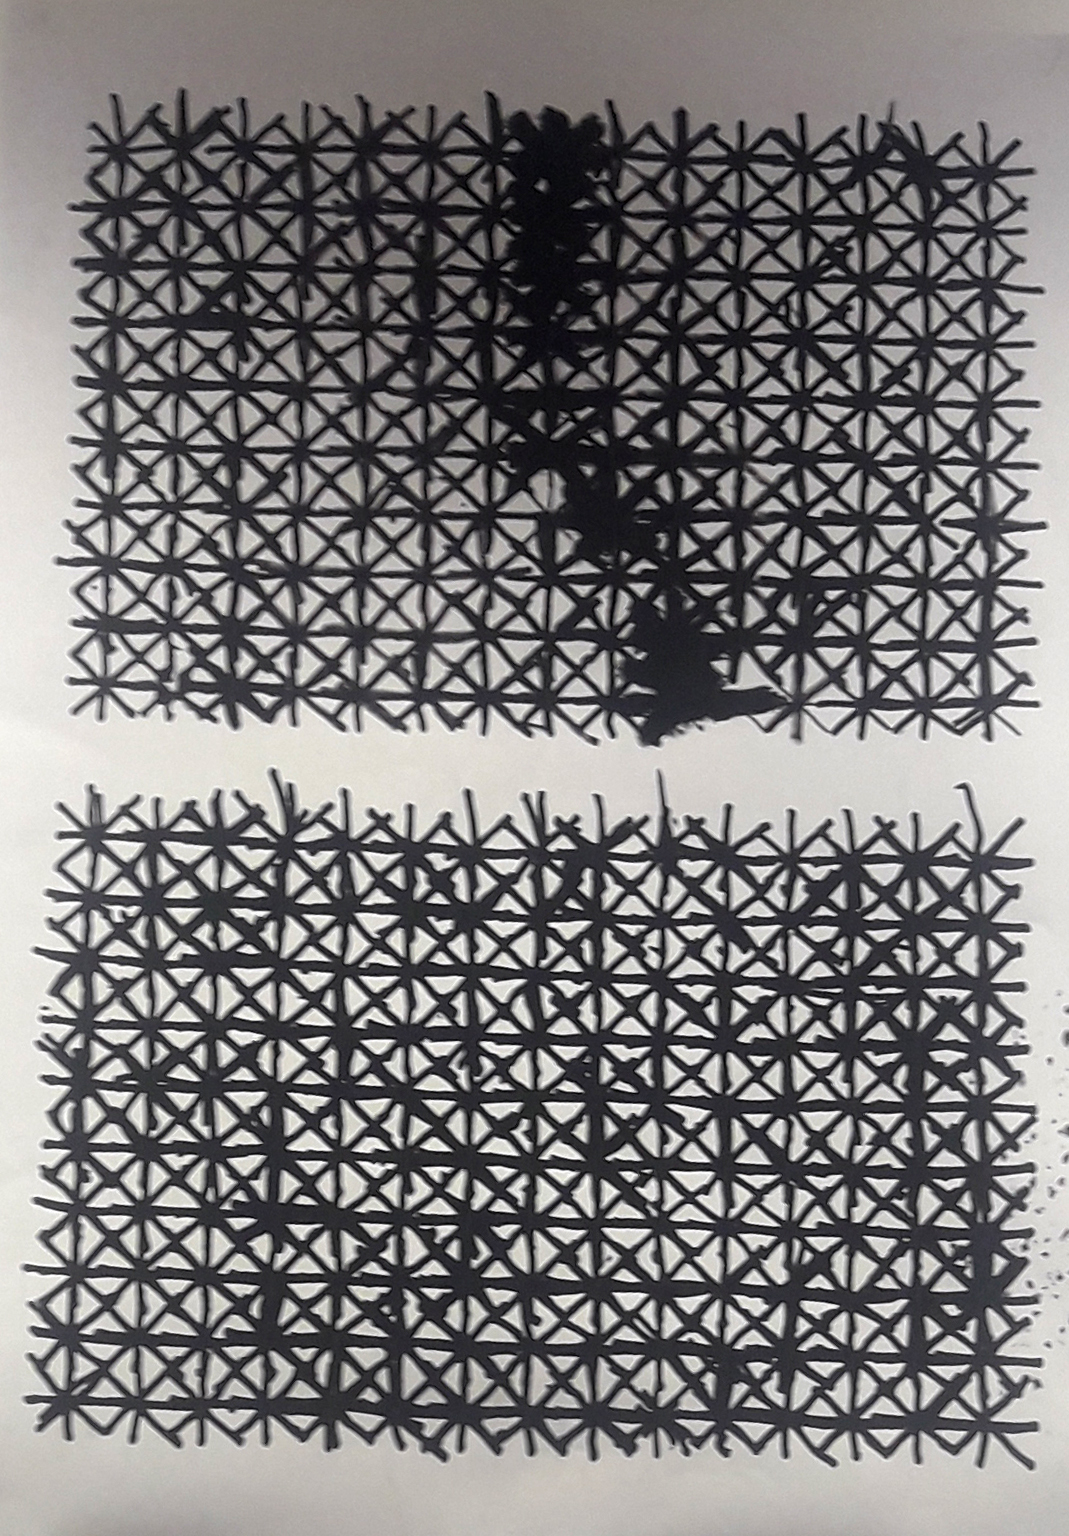 Sung Min Baik - Grid Drawing